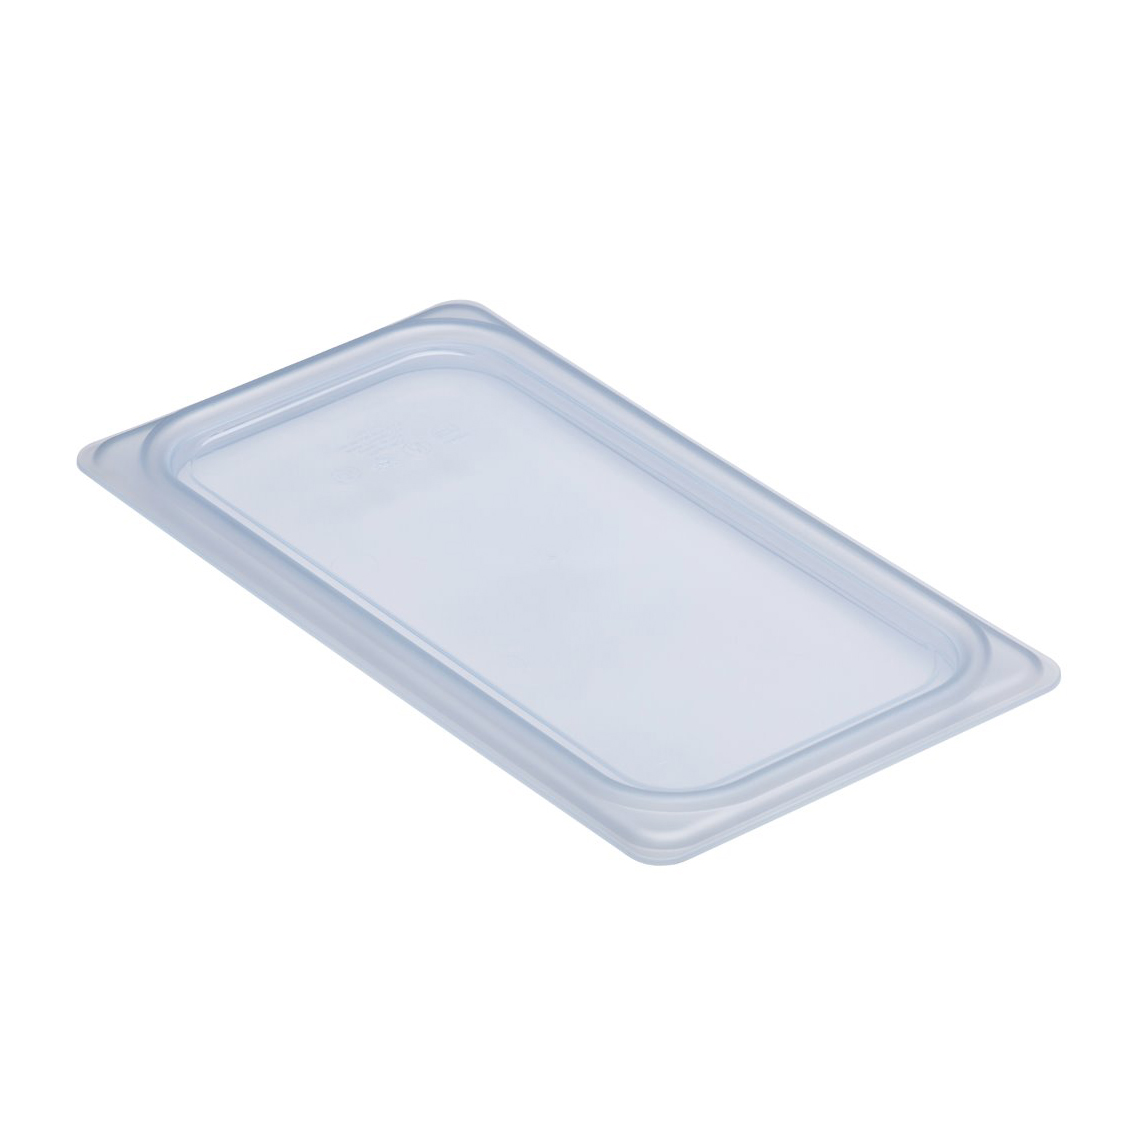 Cambro - 1/3 Size Food Pan Seal Cover (WHT) | Public Kitchen Supply